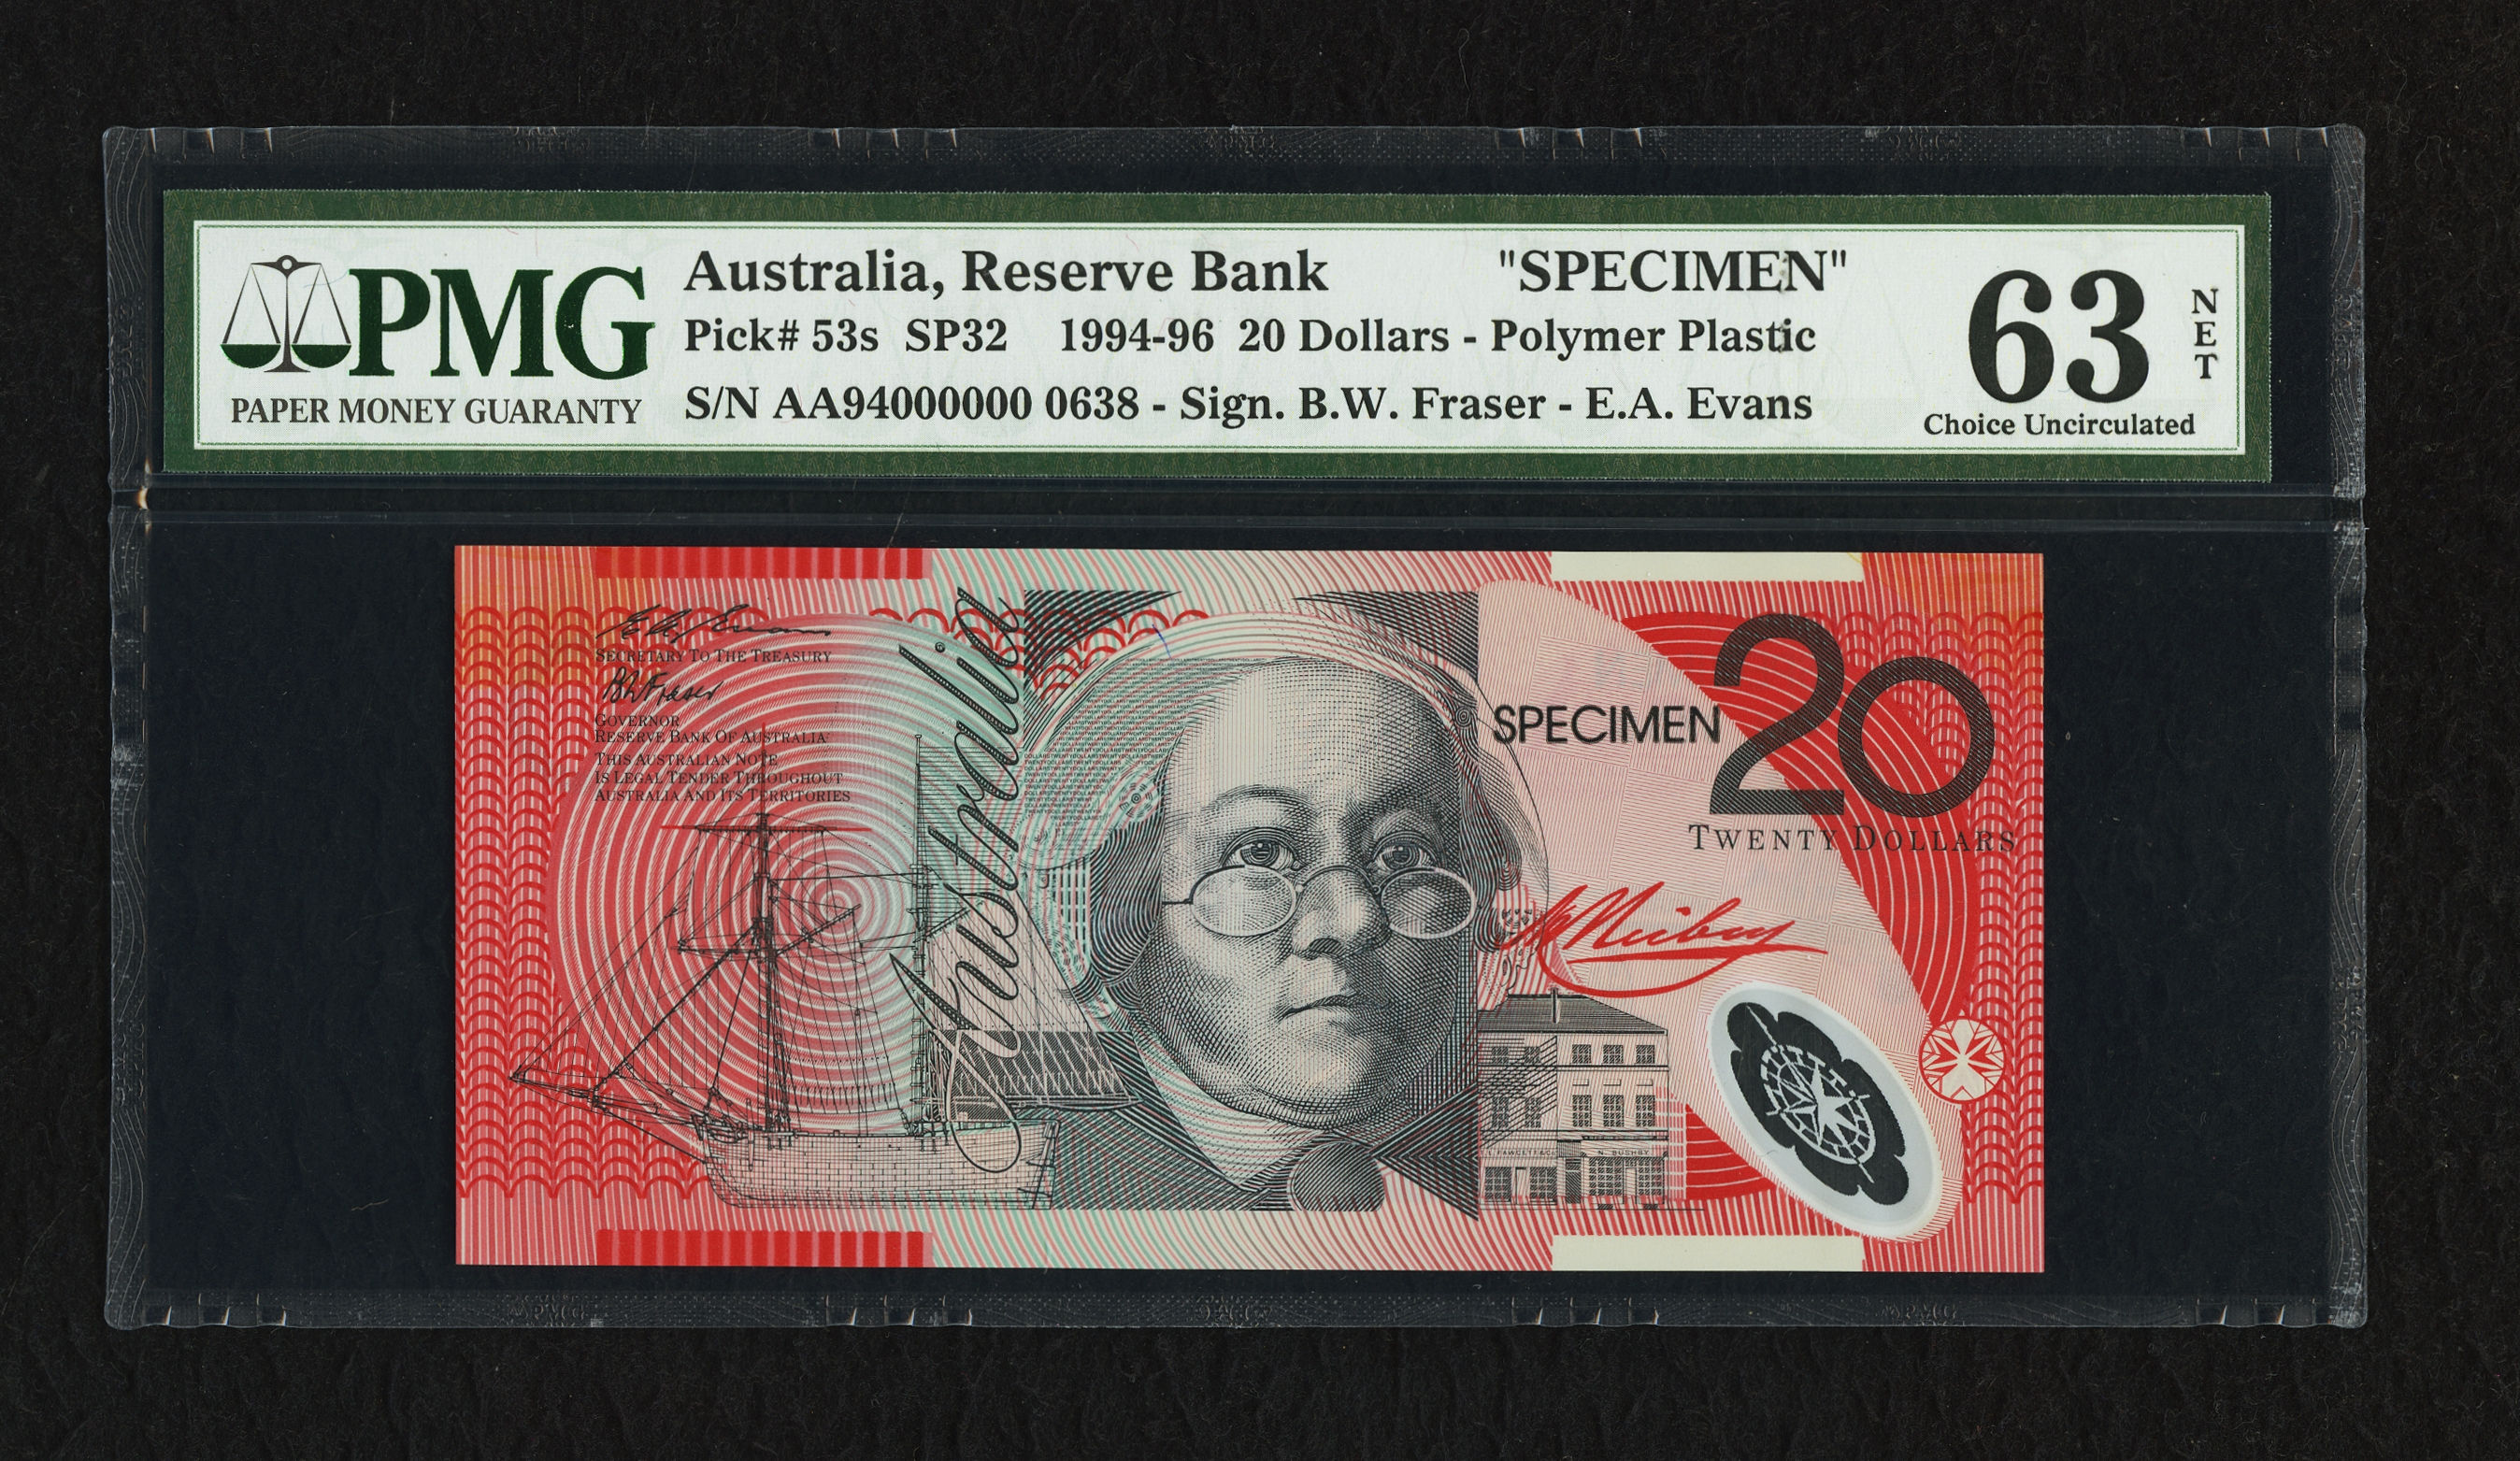 Australia Reserve Bank 20 Dollars ND 1